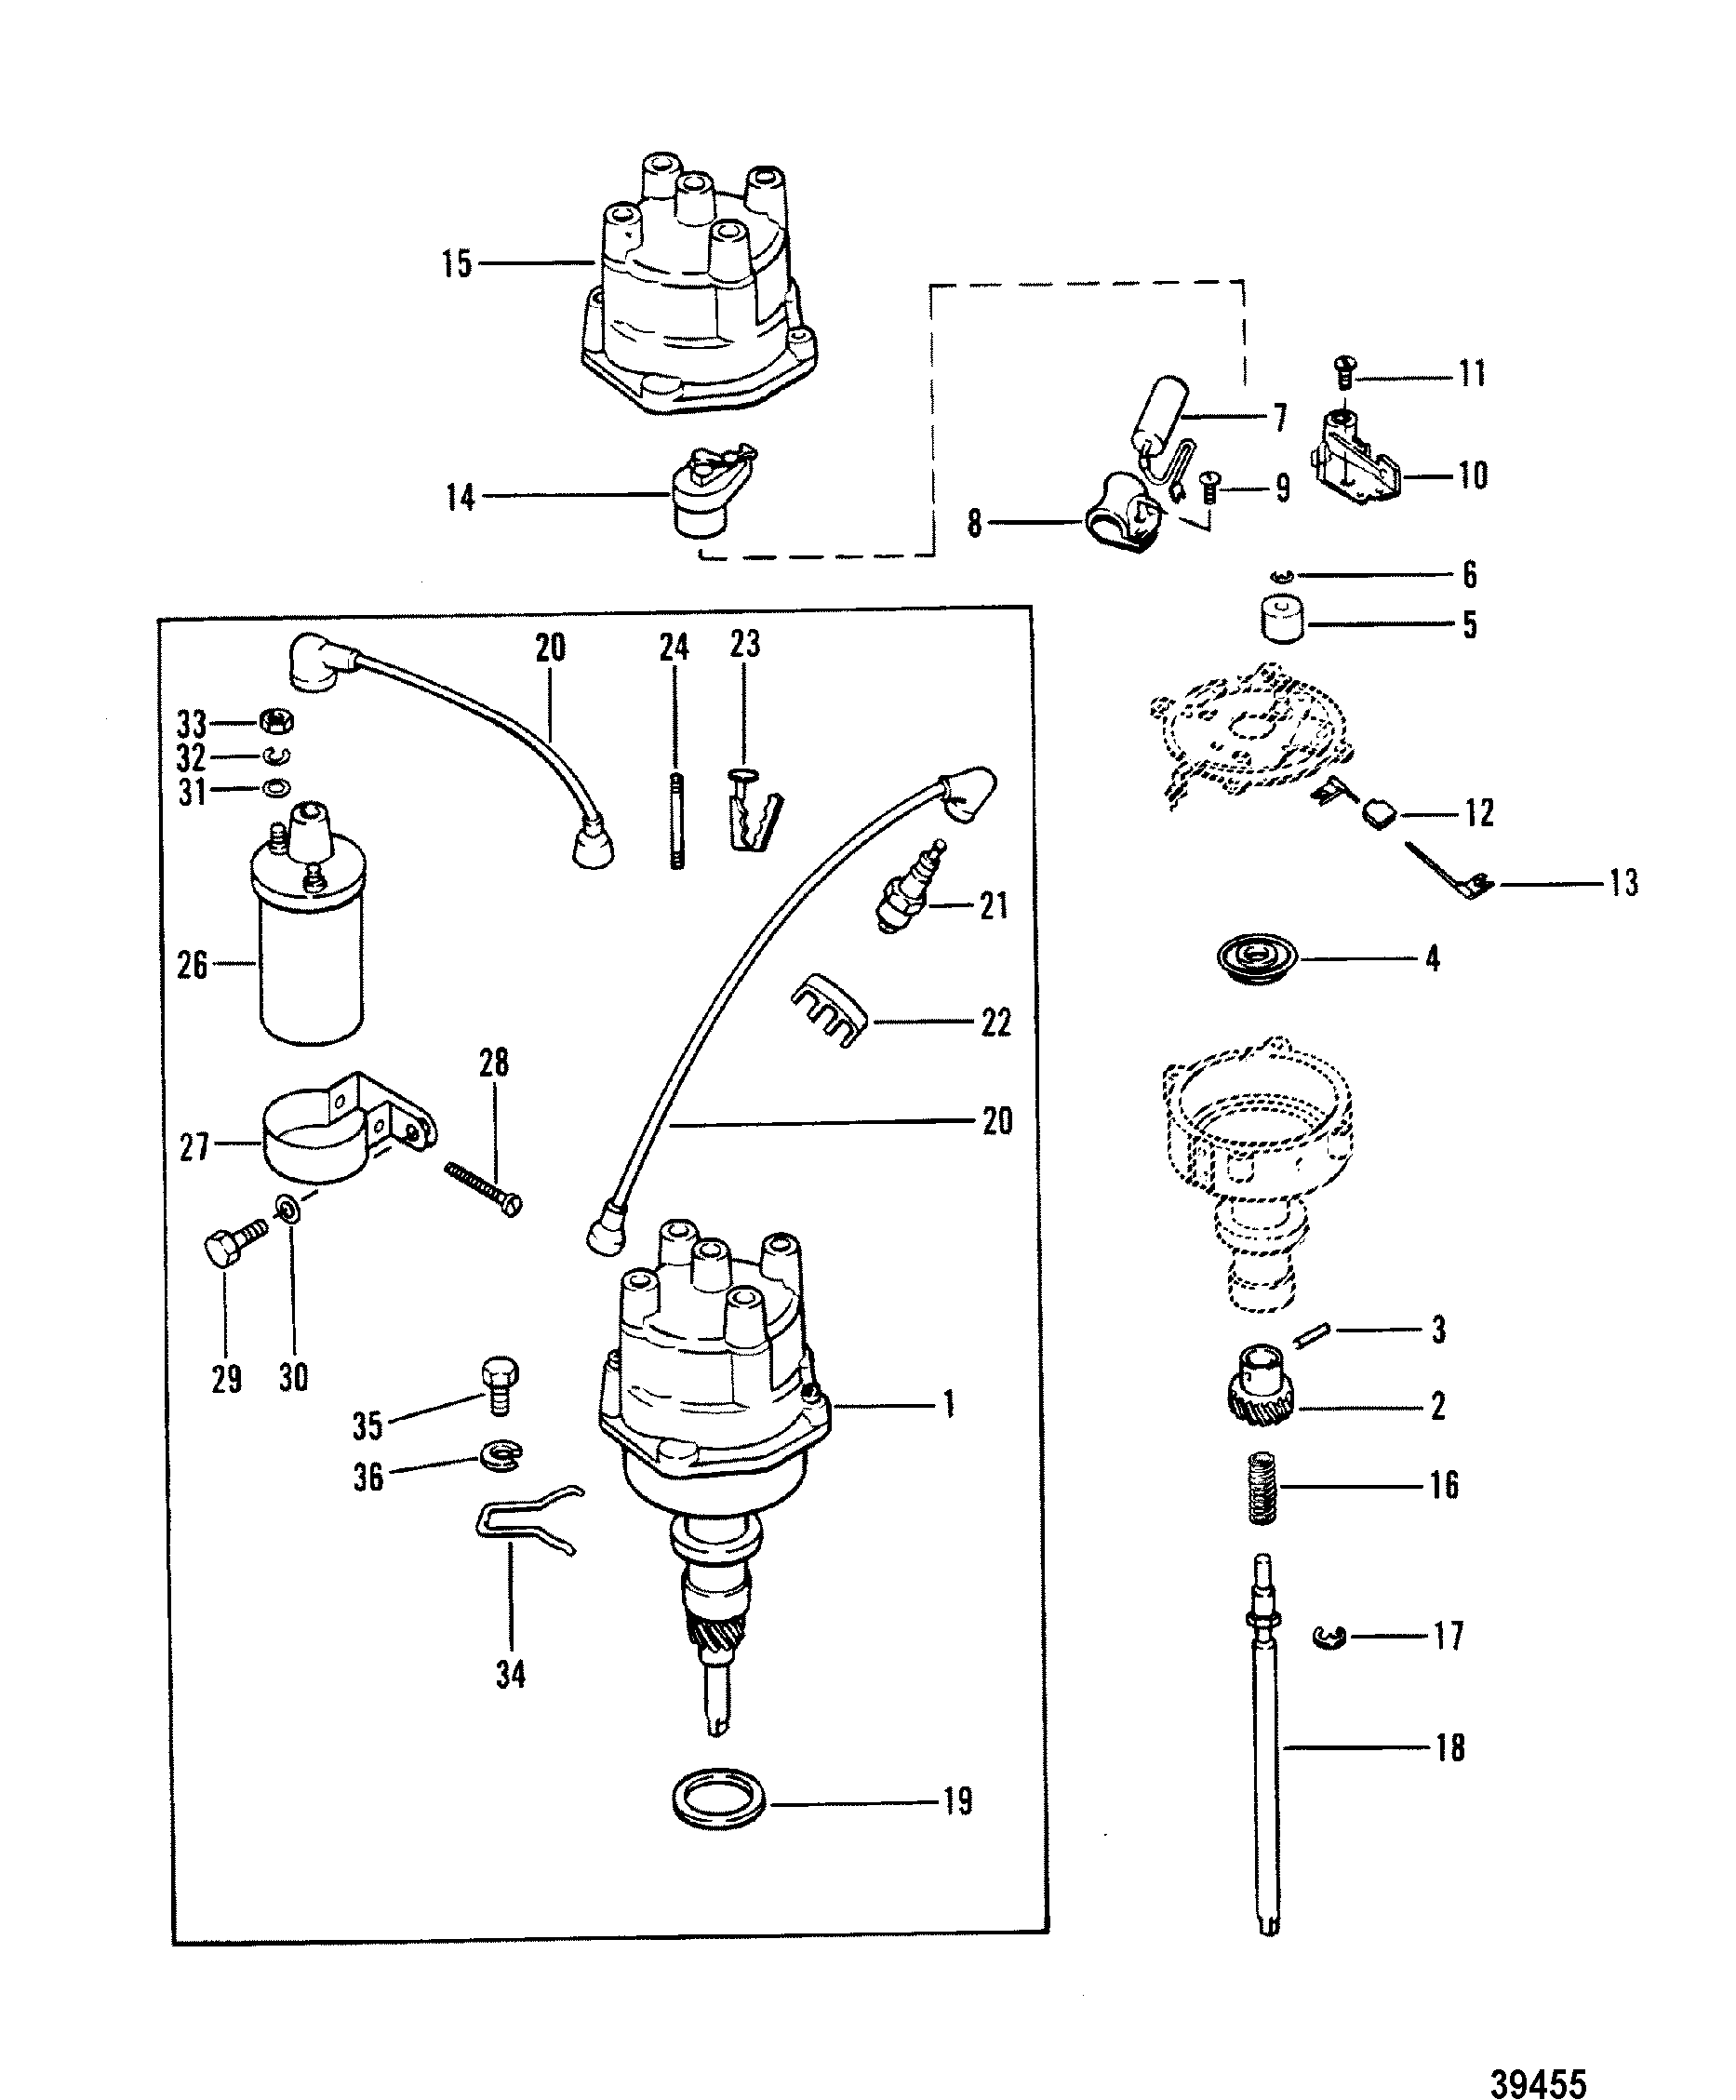 8 2 mercruiser engine diagram 165 hp mercruiser engine diagram distributor and coil for mercruiser 165 hp - 3.7l/170 hp ...